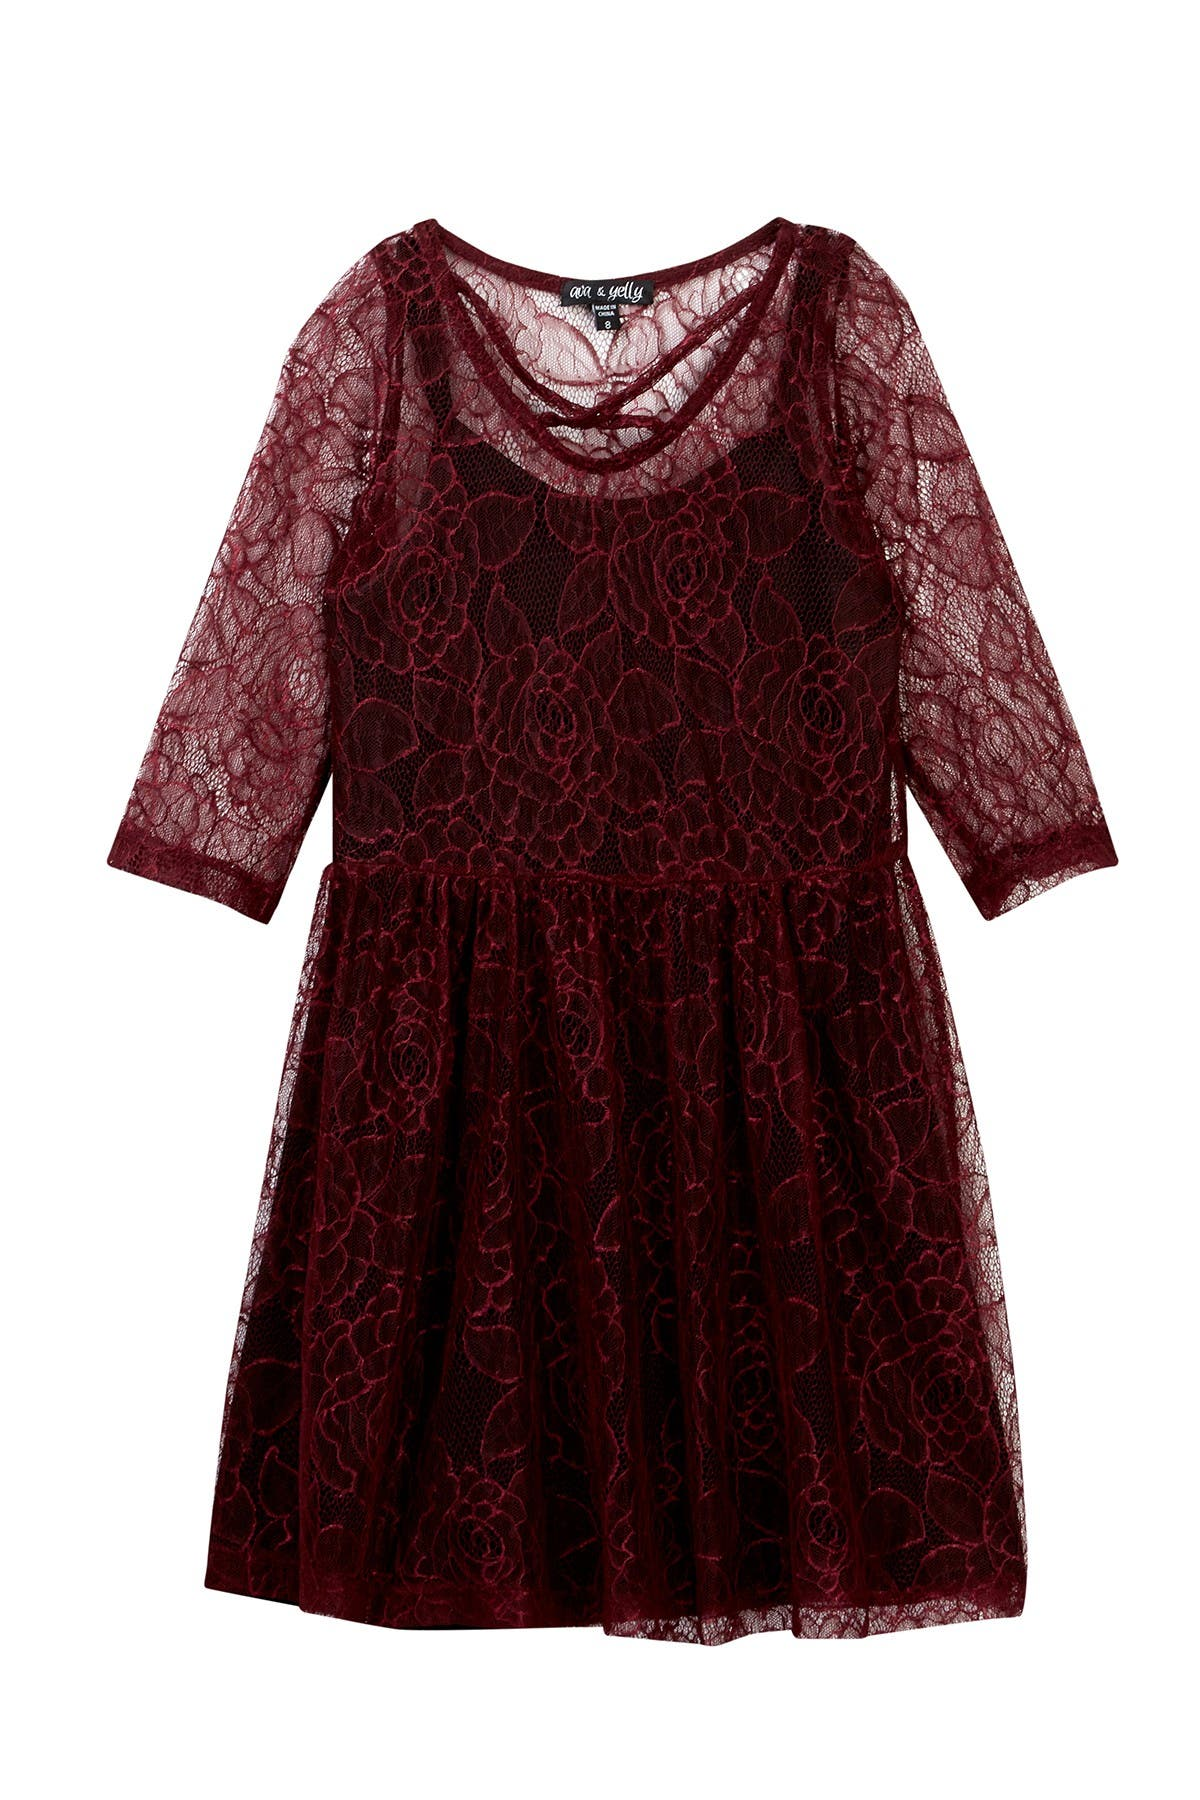 Image of AVA AND YELLY Lace Dress & Slip Set